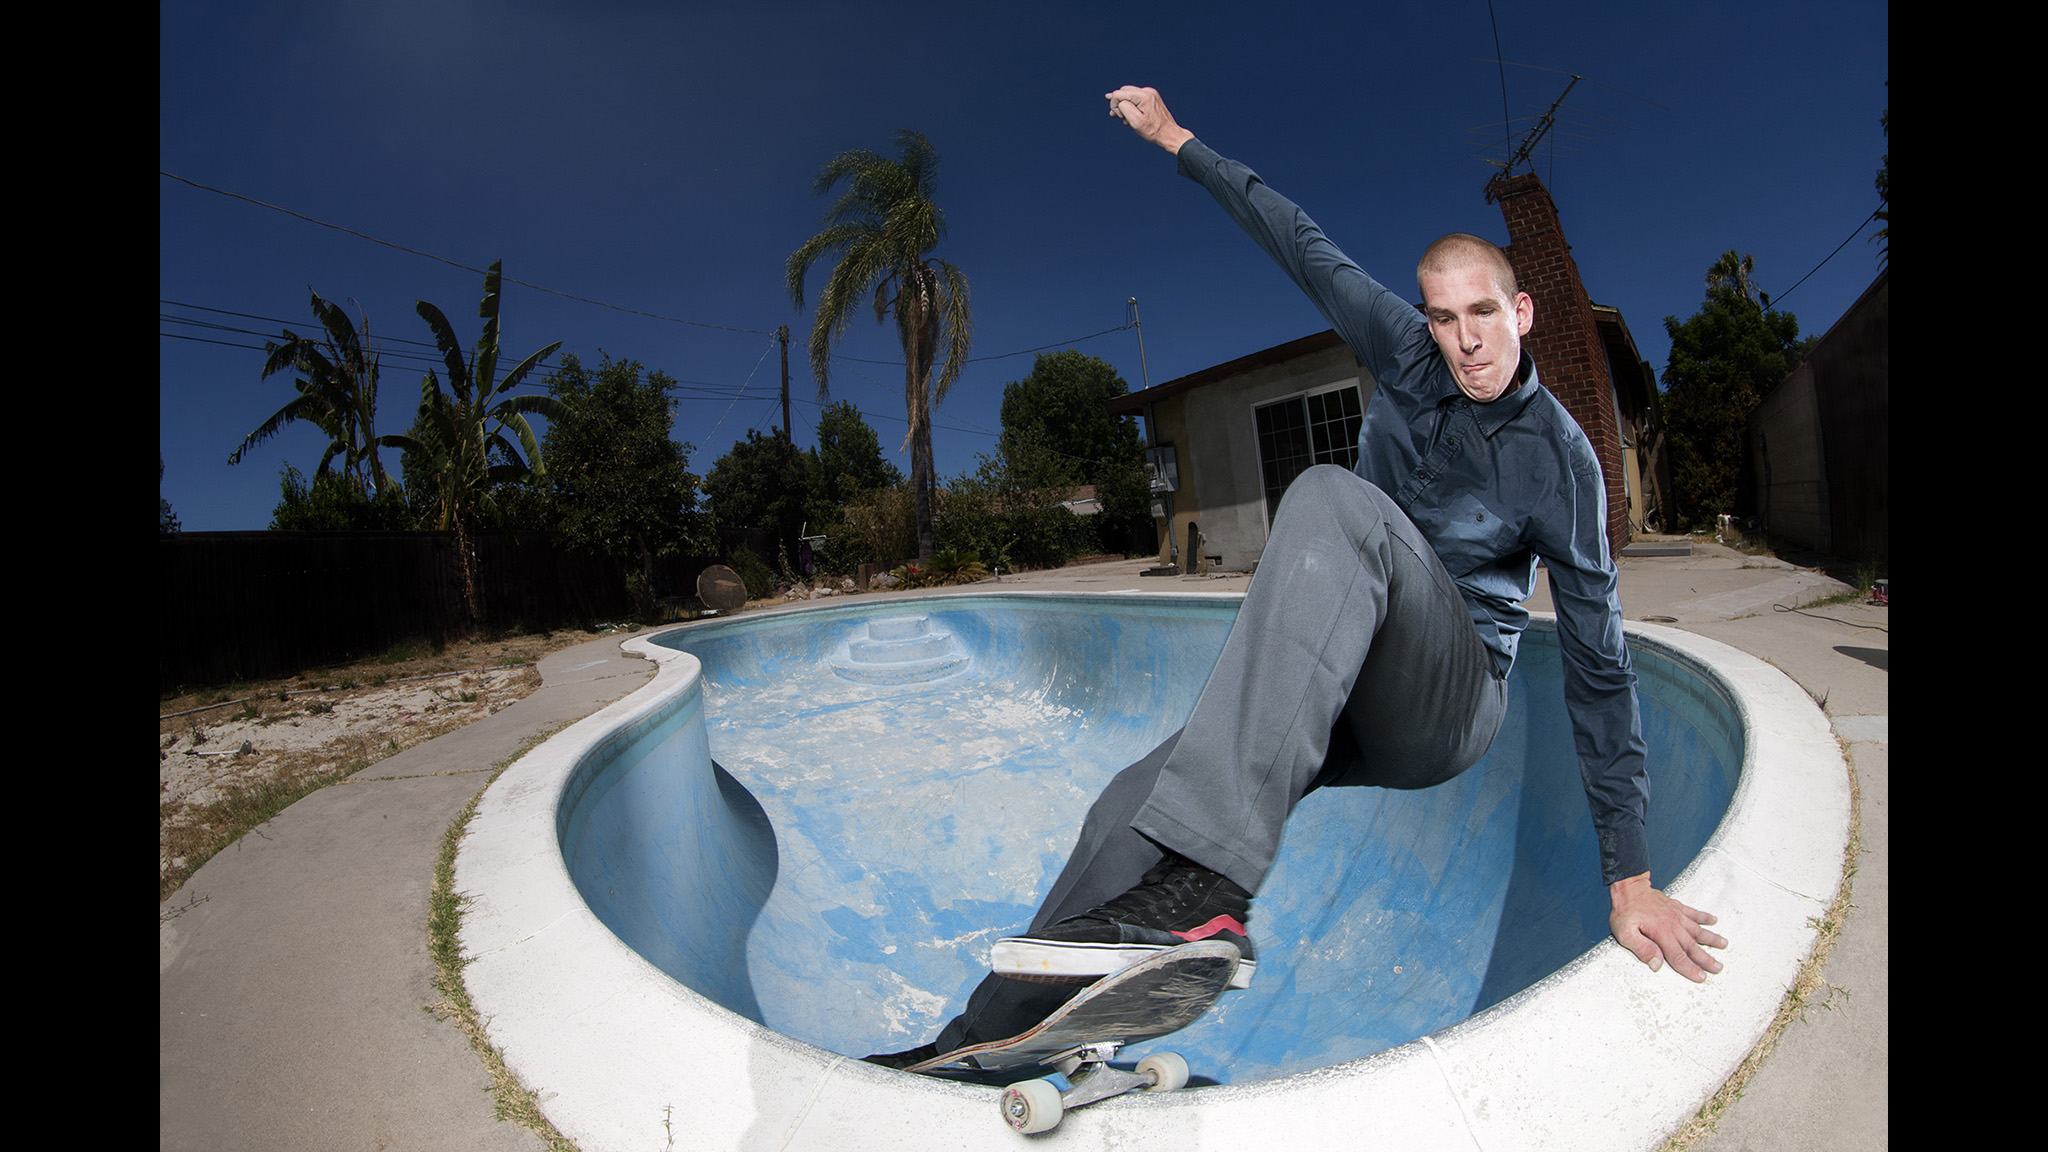 2013 -- the year in skateboarding